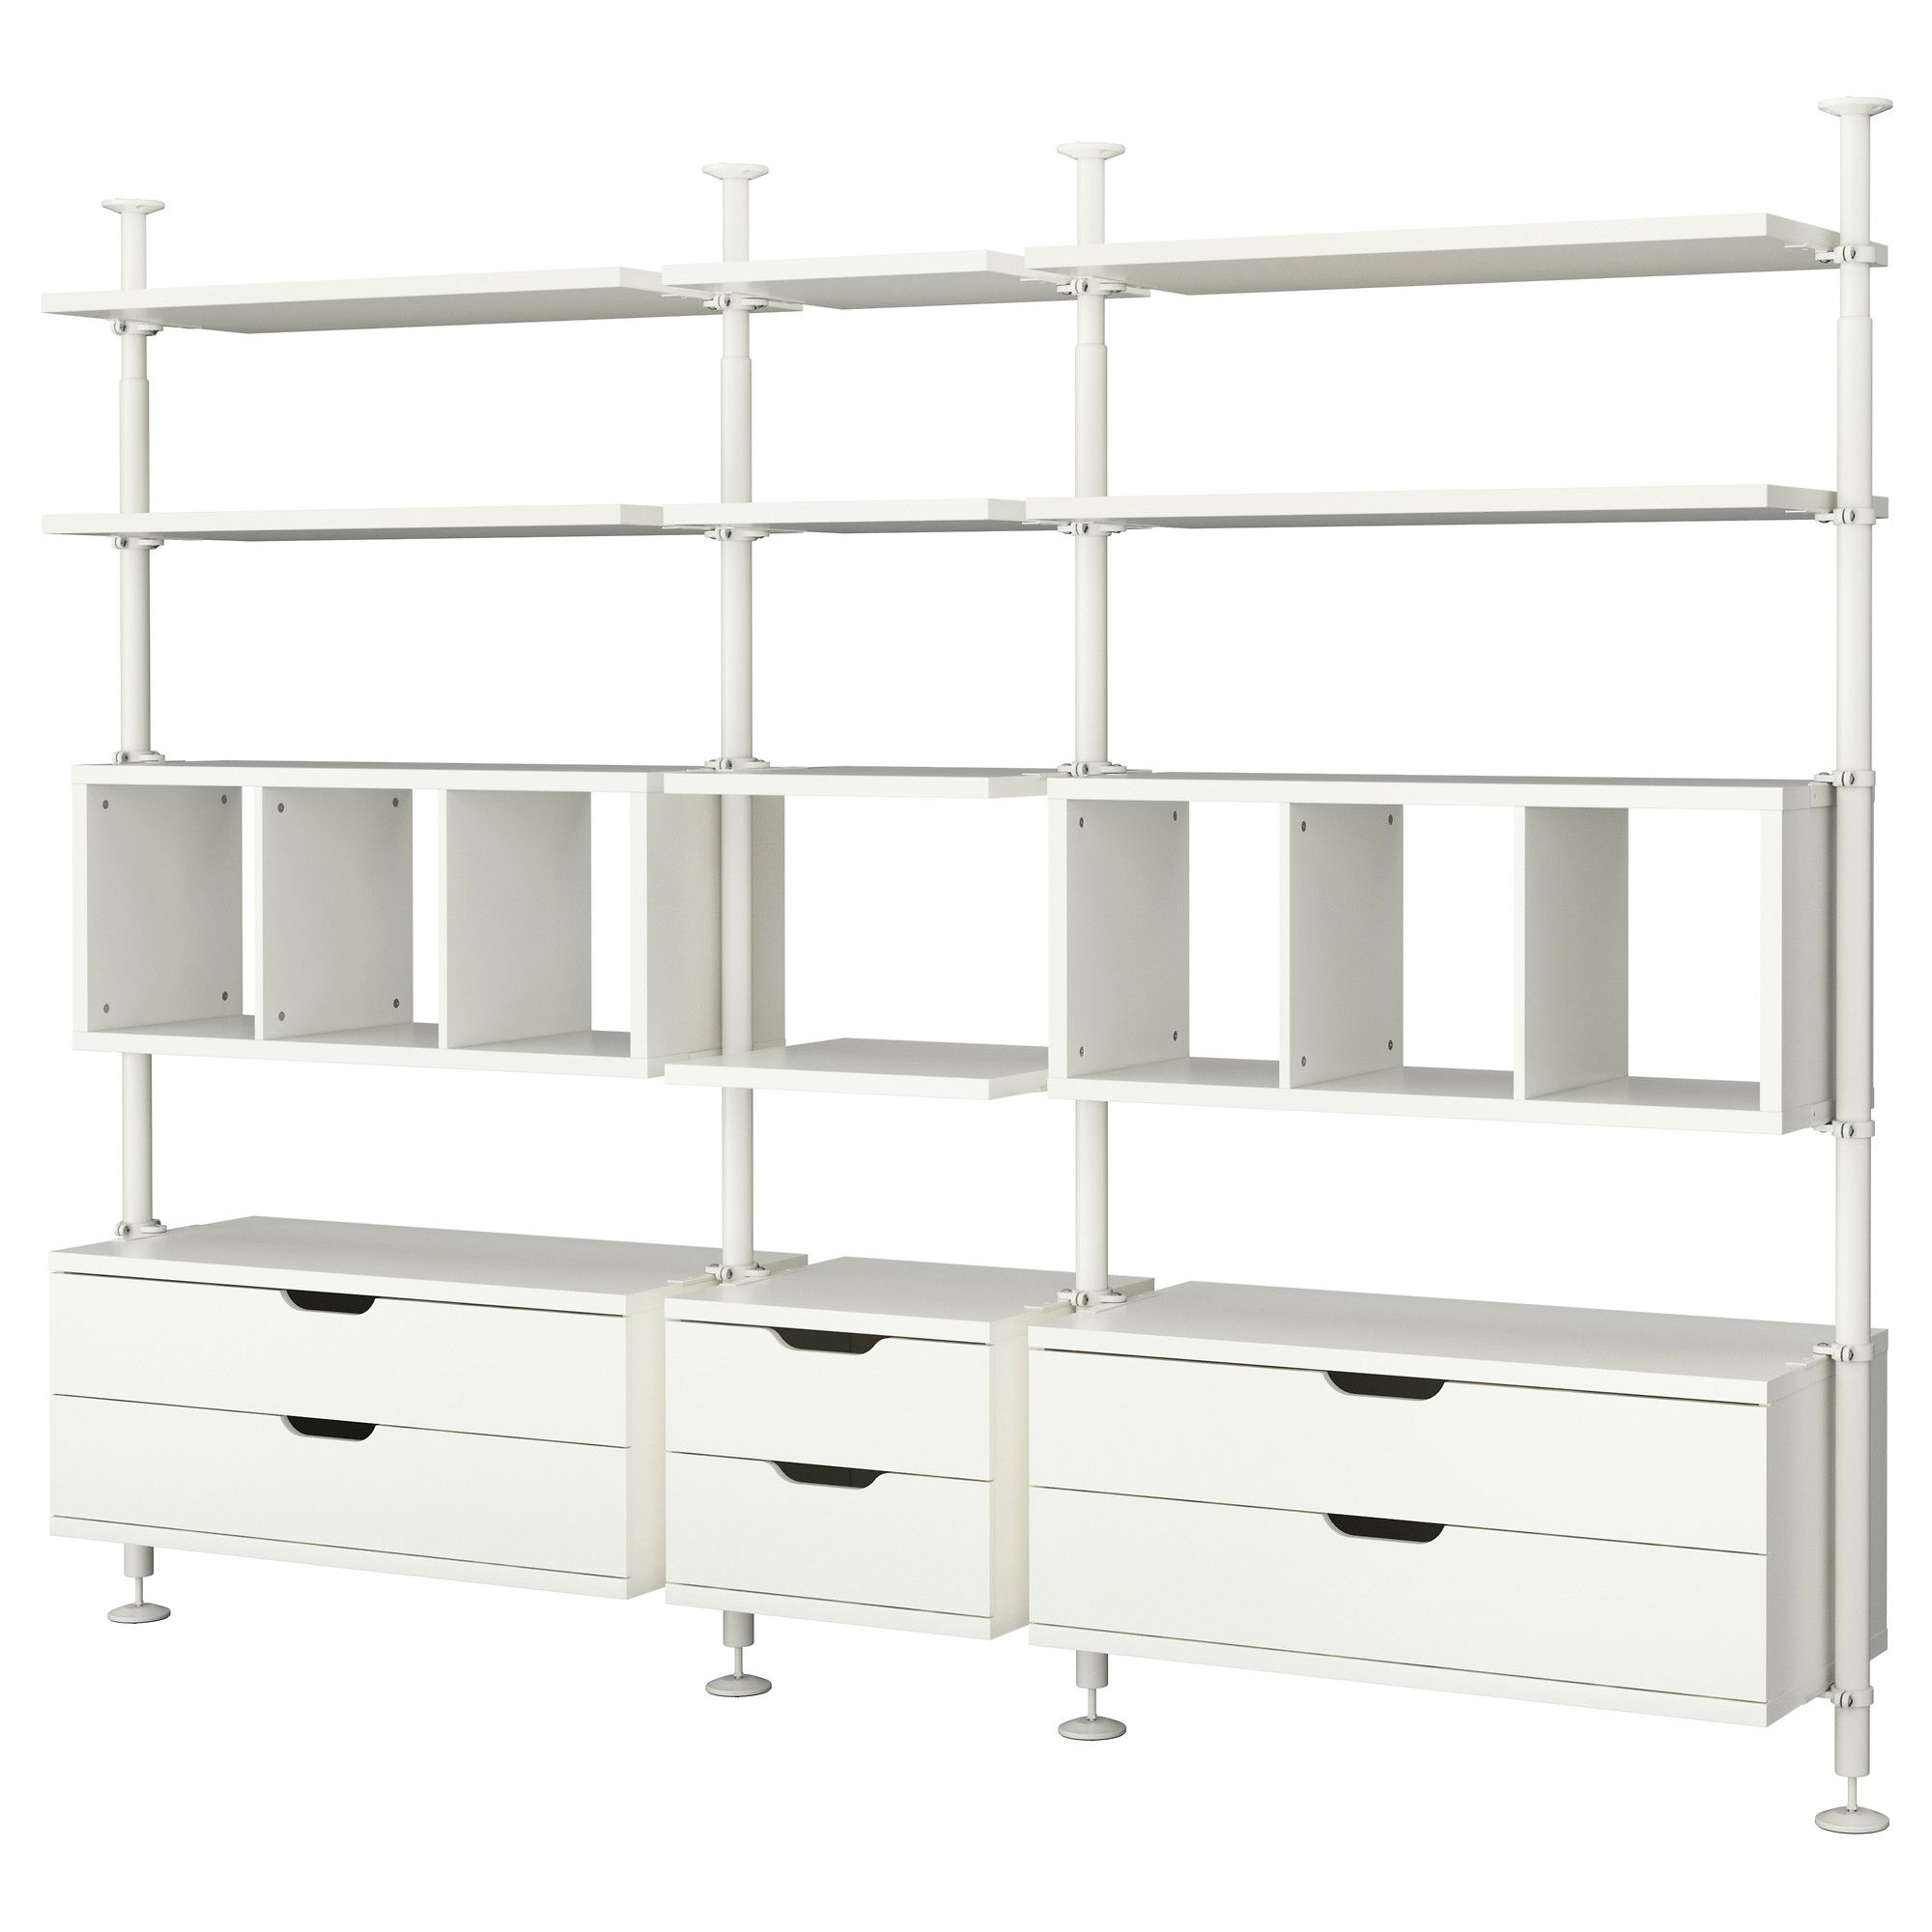 stolmen 3 sections ikea for one side of storage closet